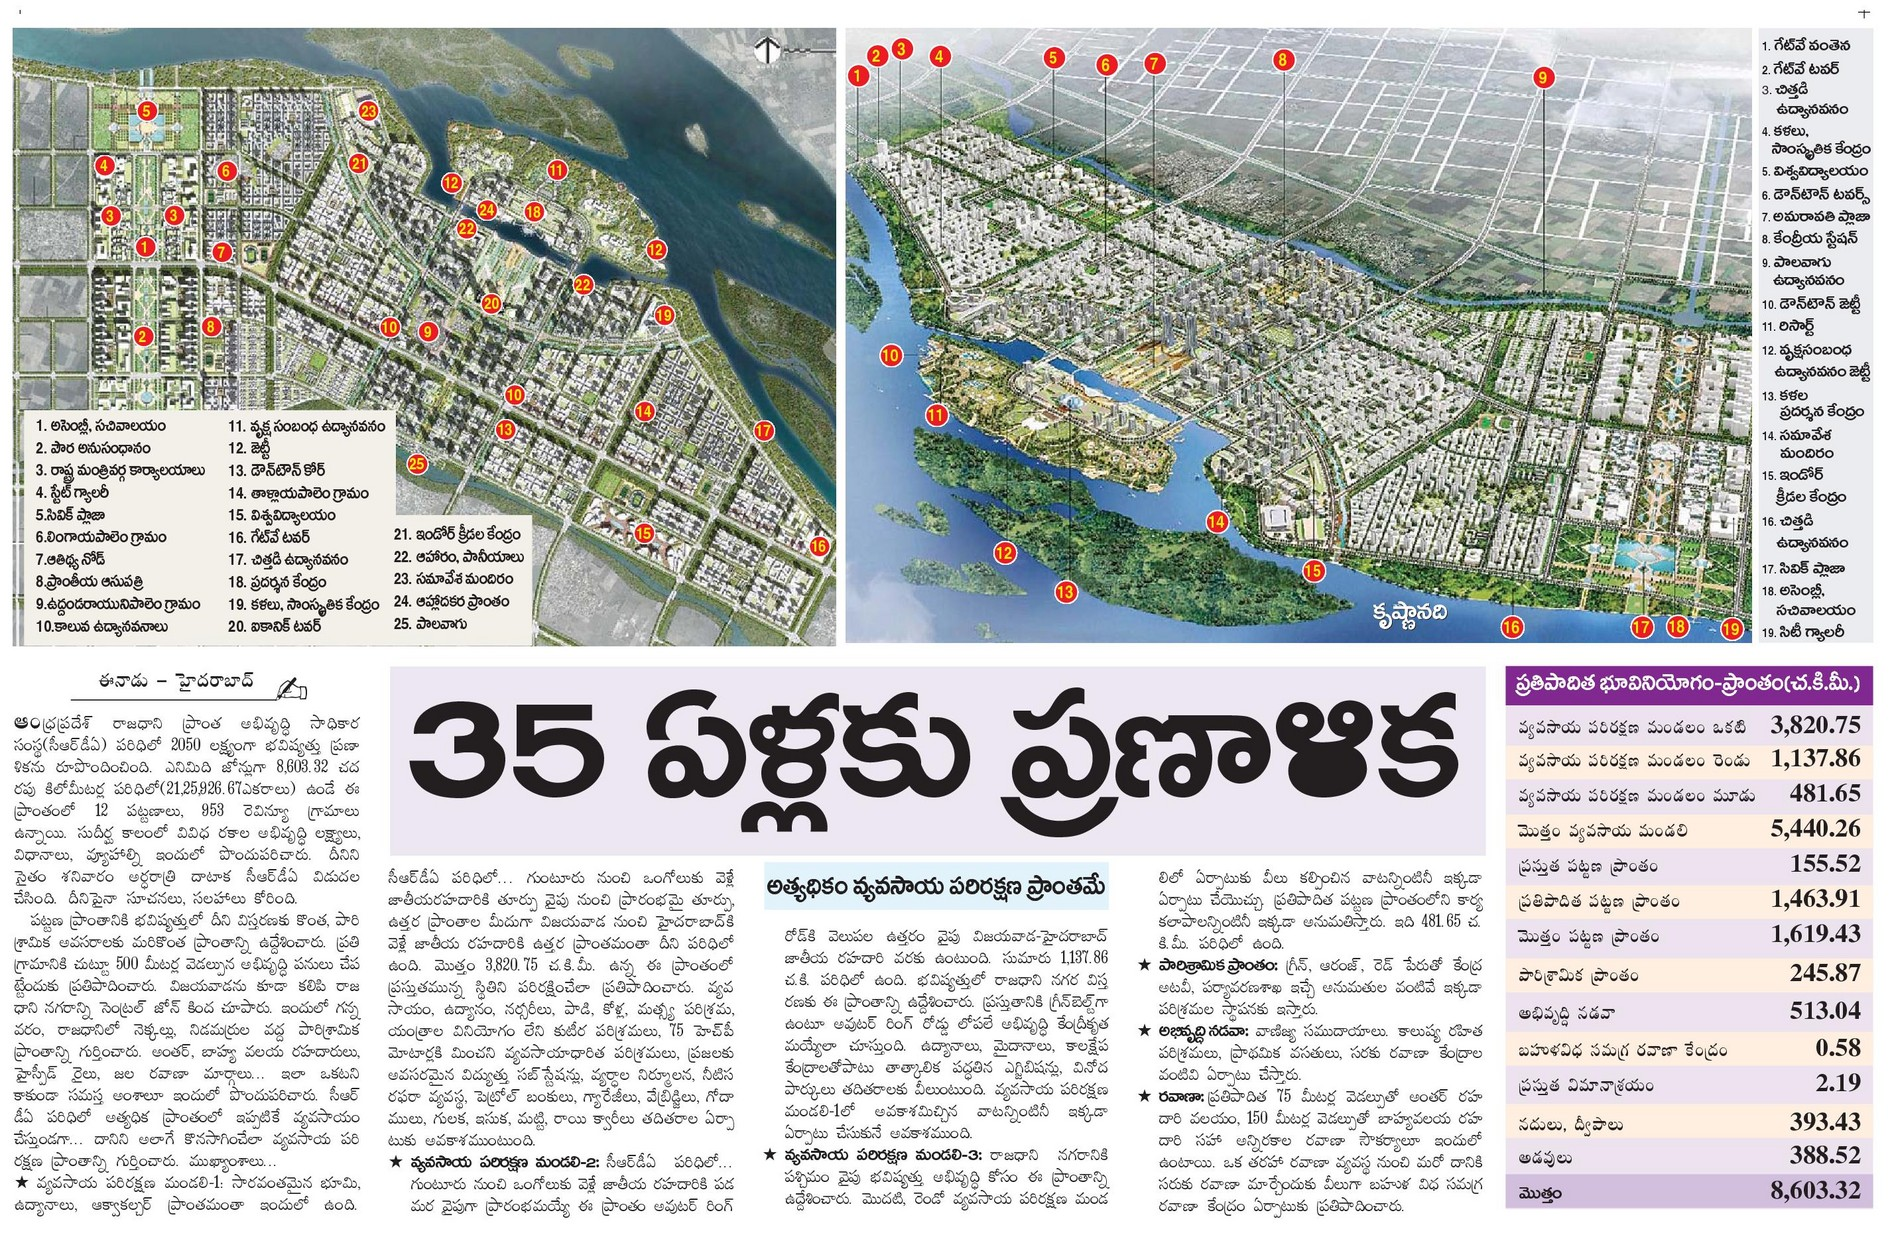 Amaravathi capital future plan for 35 Years (2050)